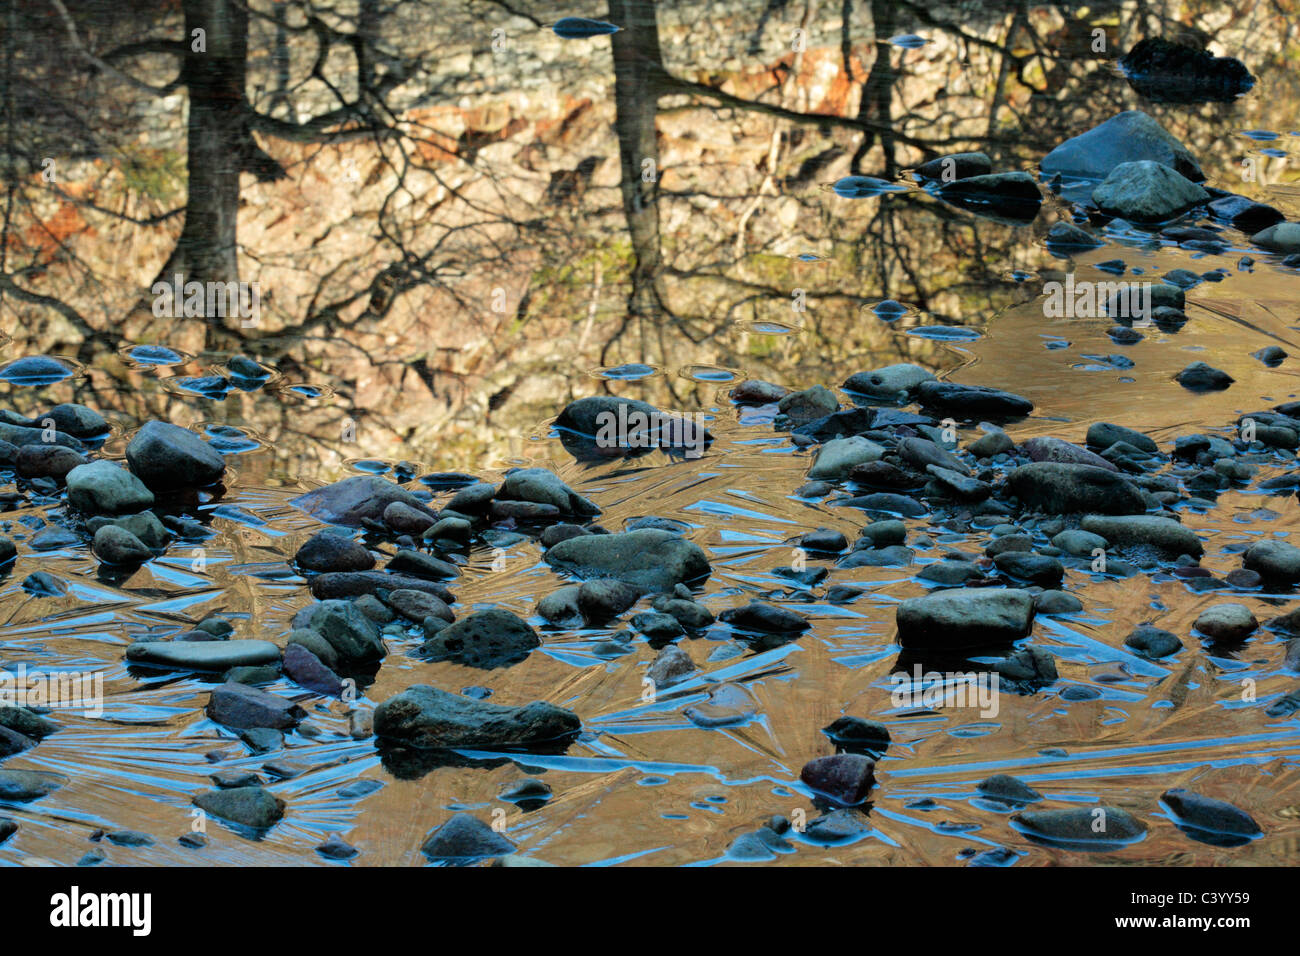 Warm reflection of bare trees in winter mix with the cool tones of rocks and ice in shadow along the shores of the - Stock Image